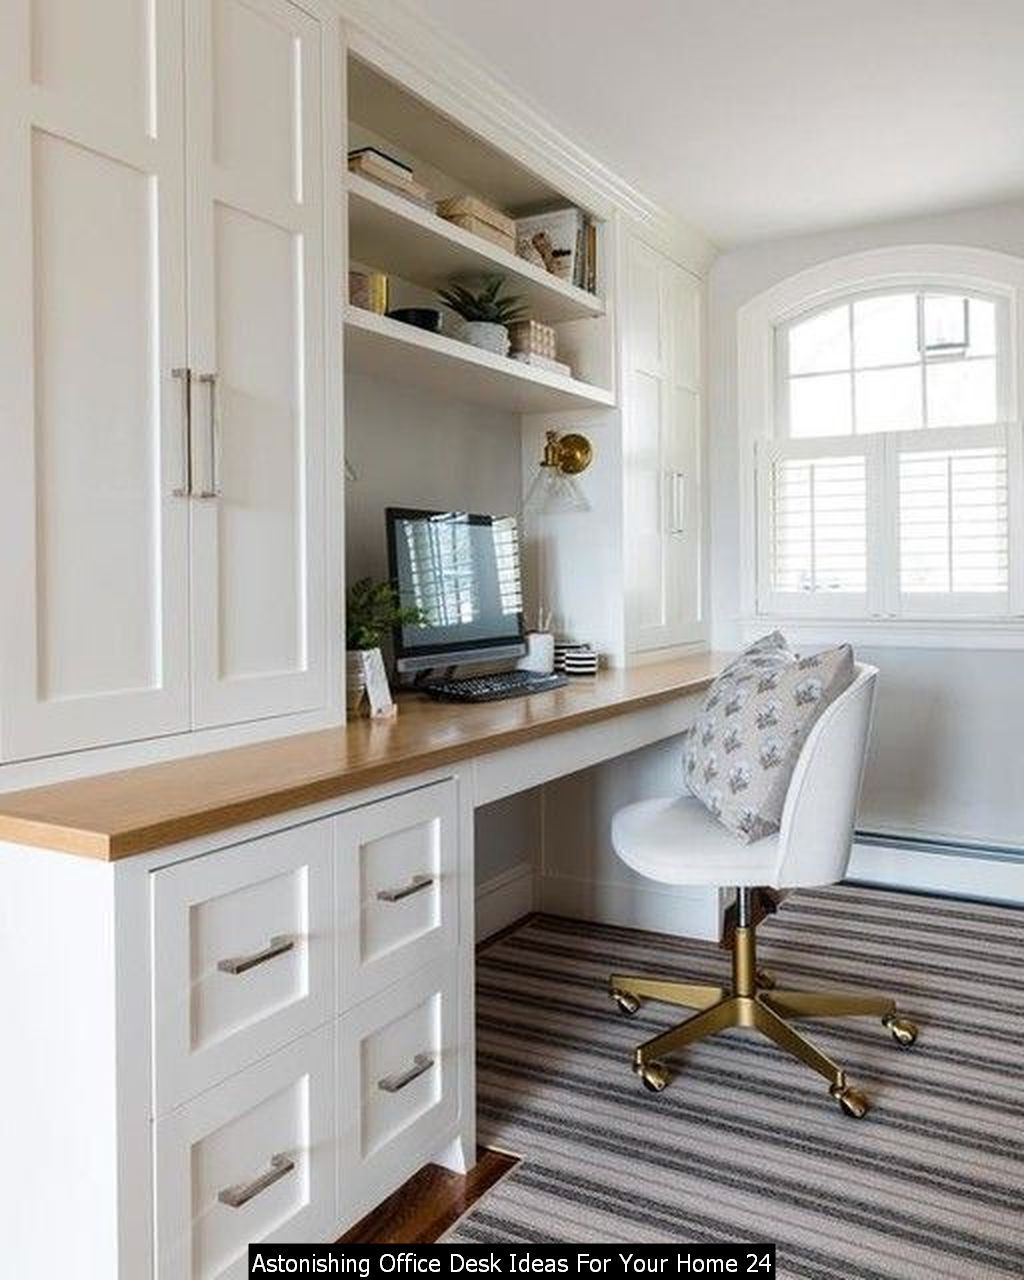 20 Astonishing Office Desk Ideas For Your Home